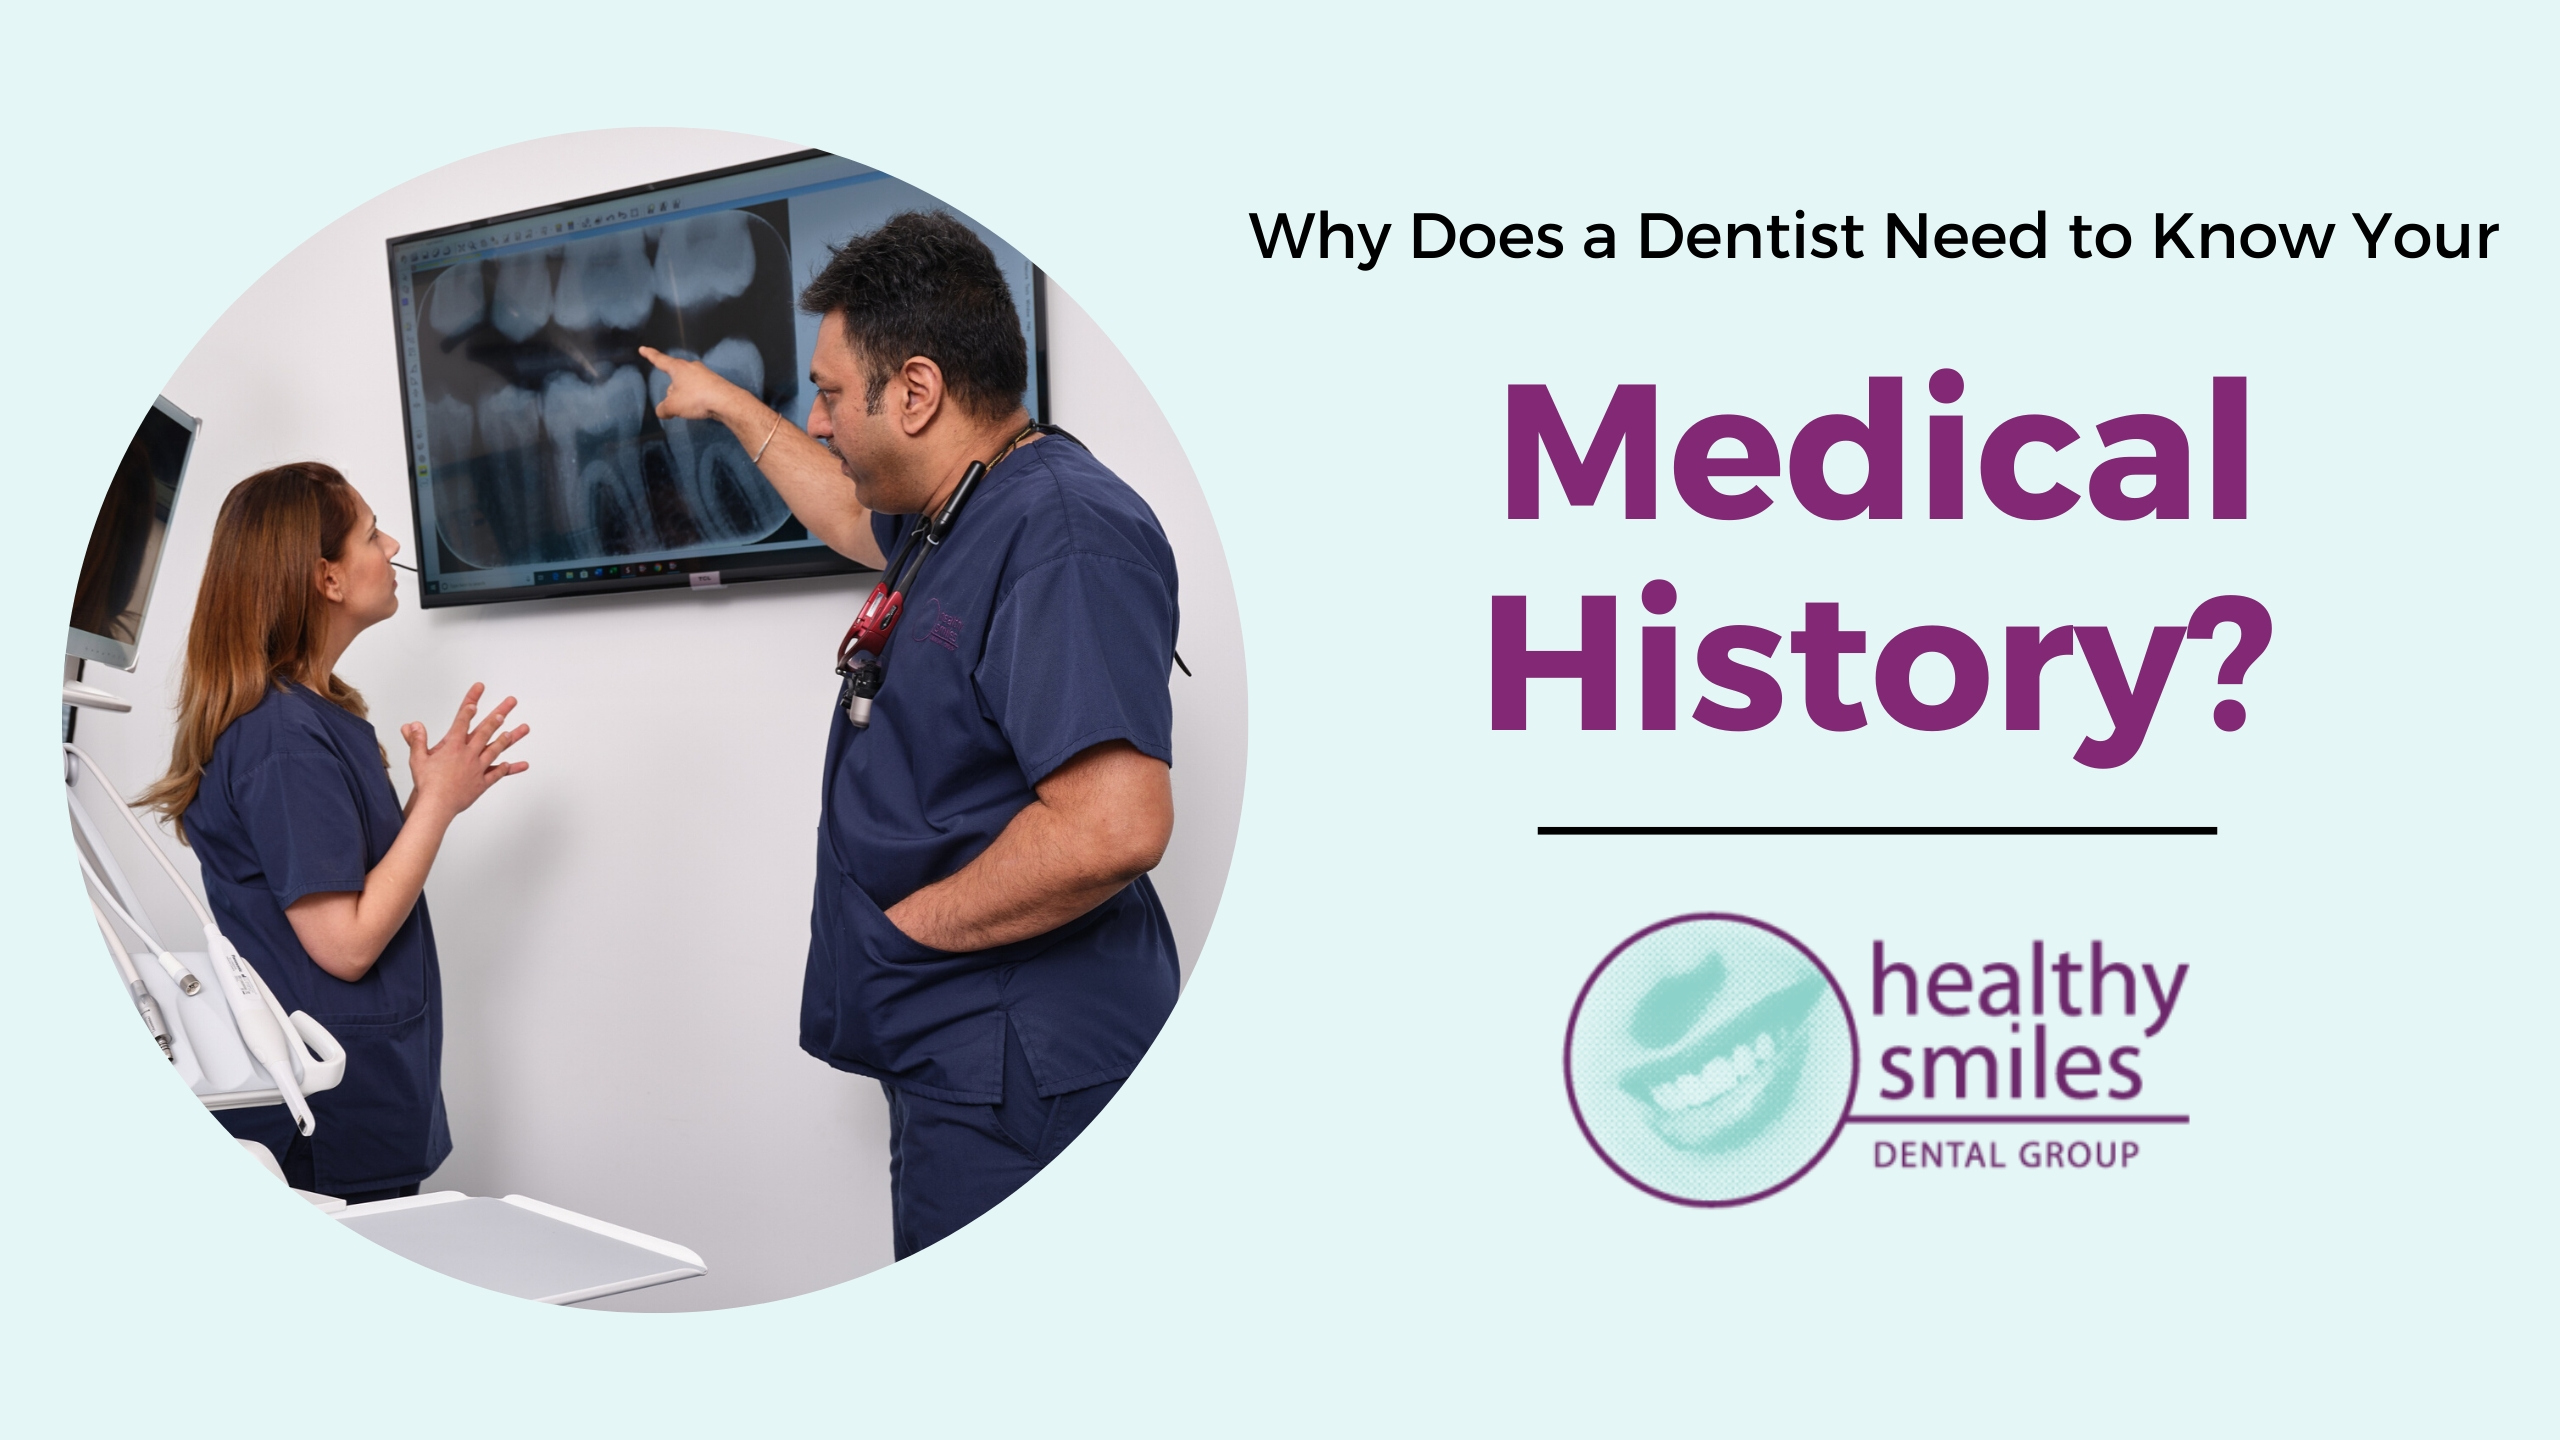 Why Does a Dentist Need to Know Your Medical History?